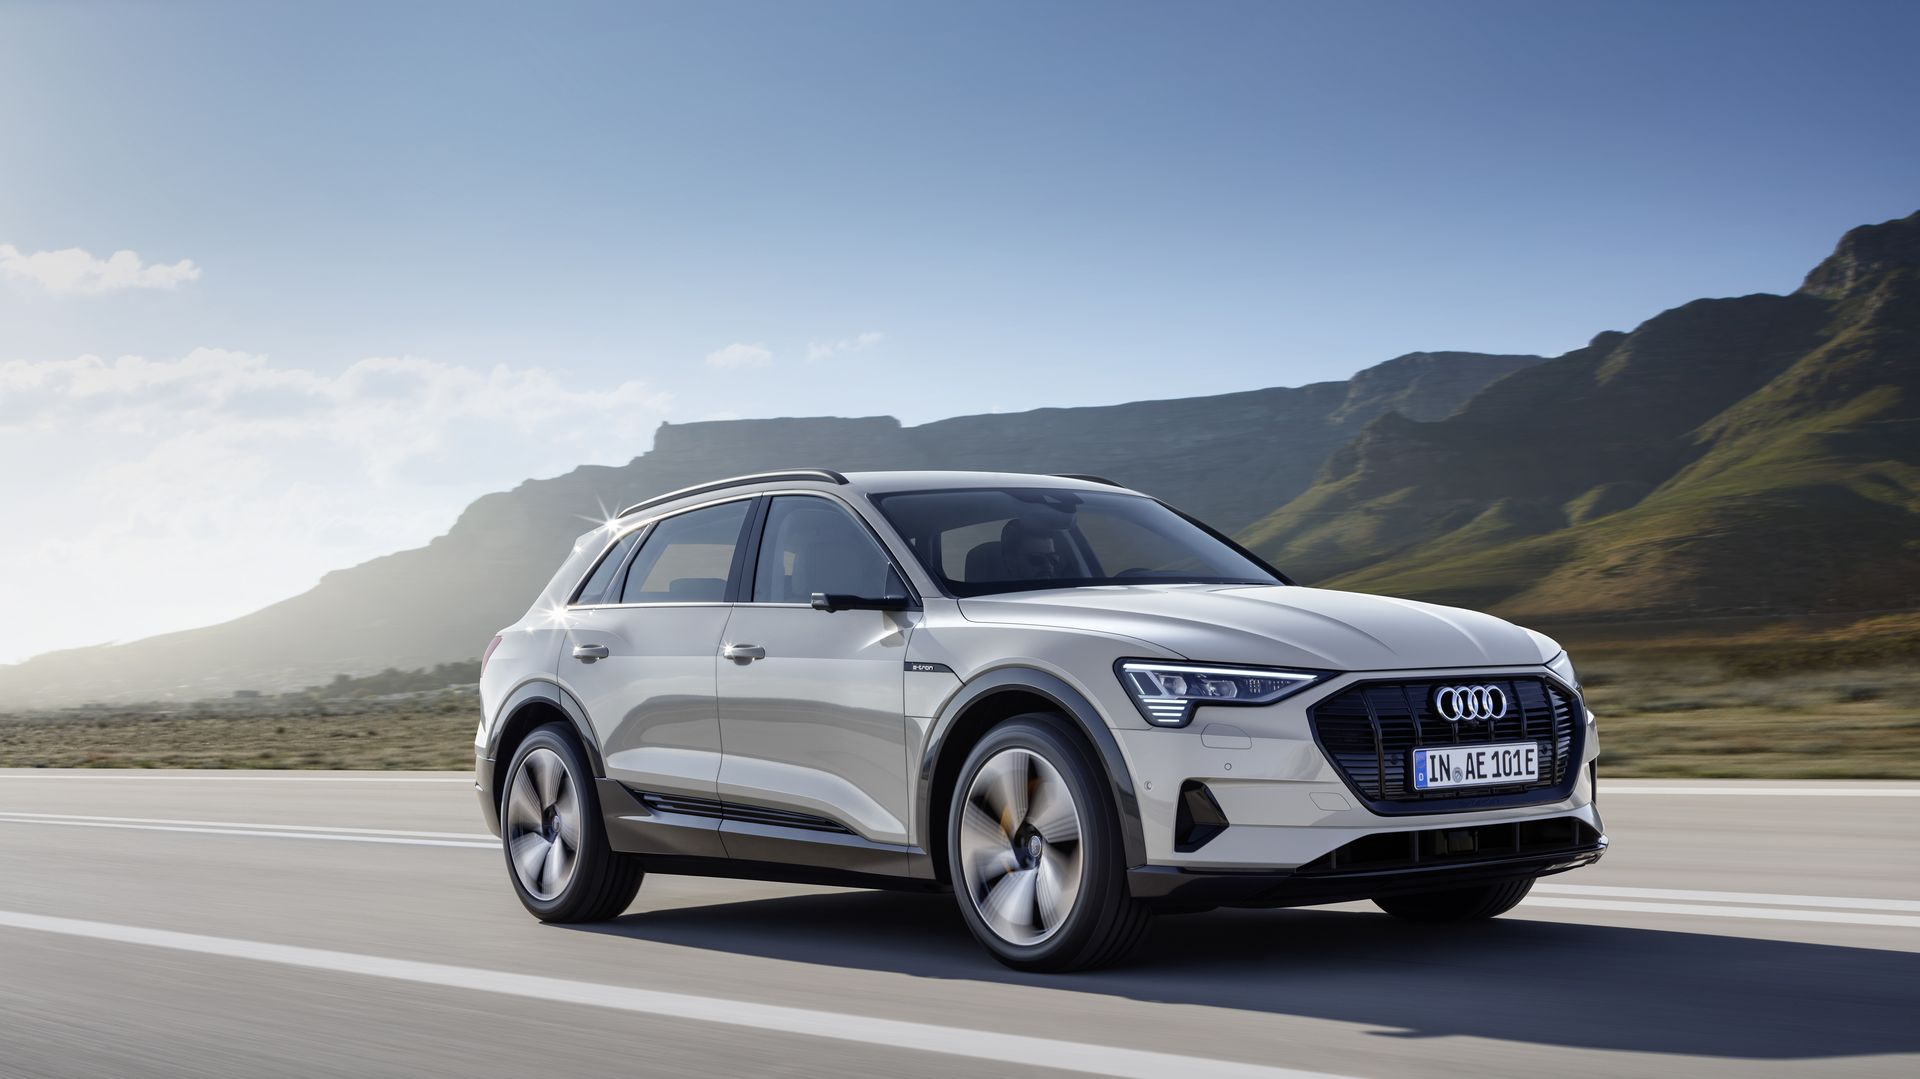 Audi e-tron's low range might be down to inefficient battery